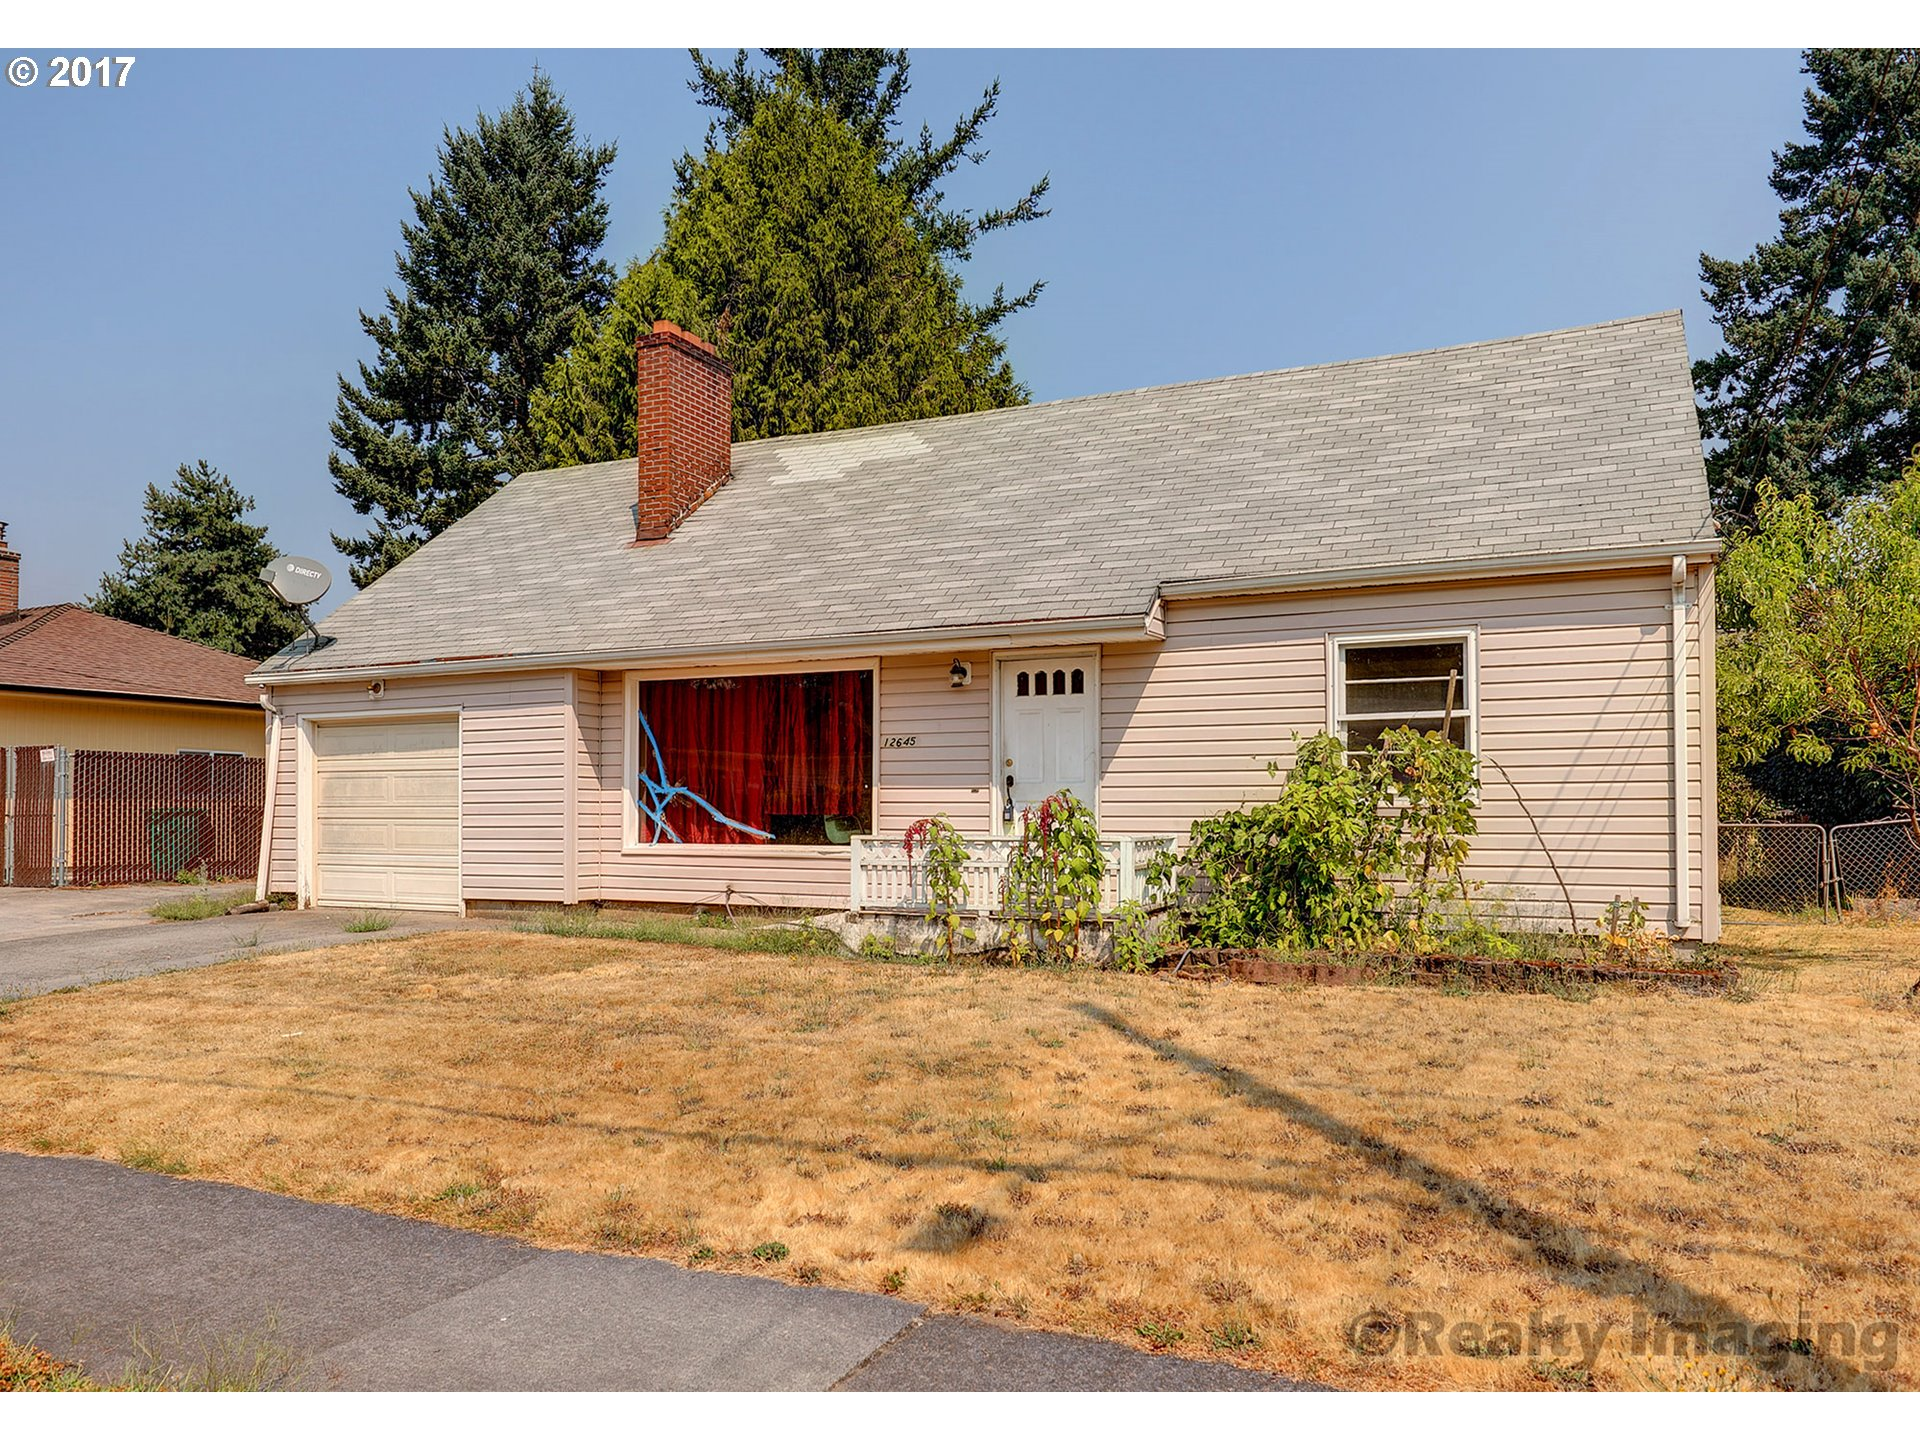 1906 sq. ft 3 bedrooms 3 bathrooms  House ,Portland, OR